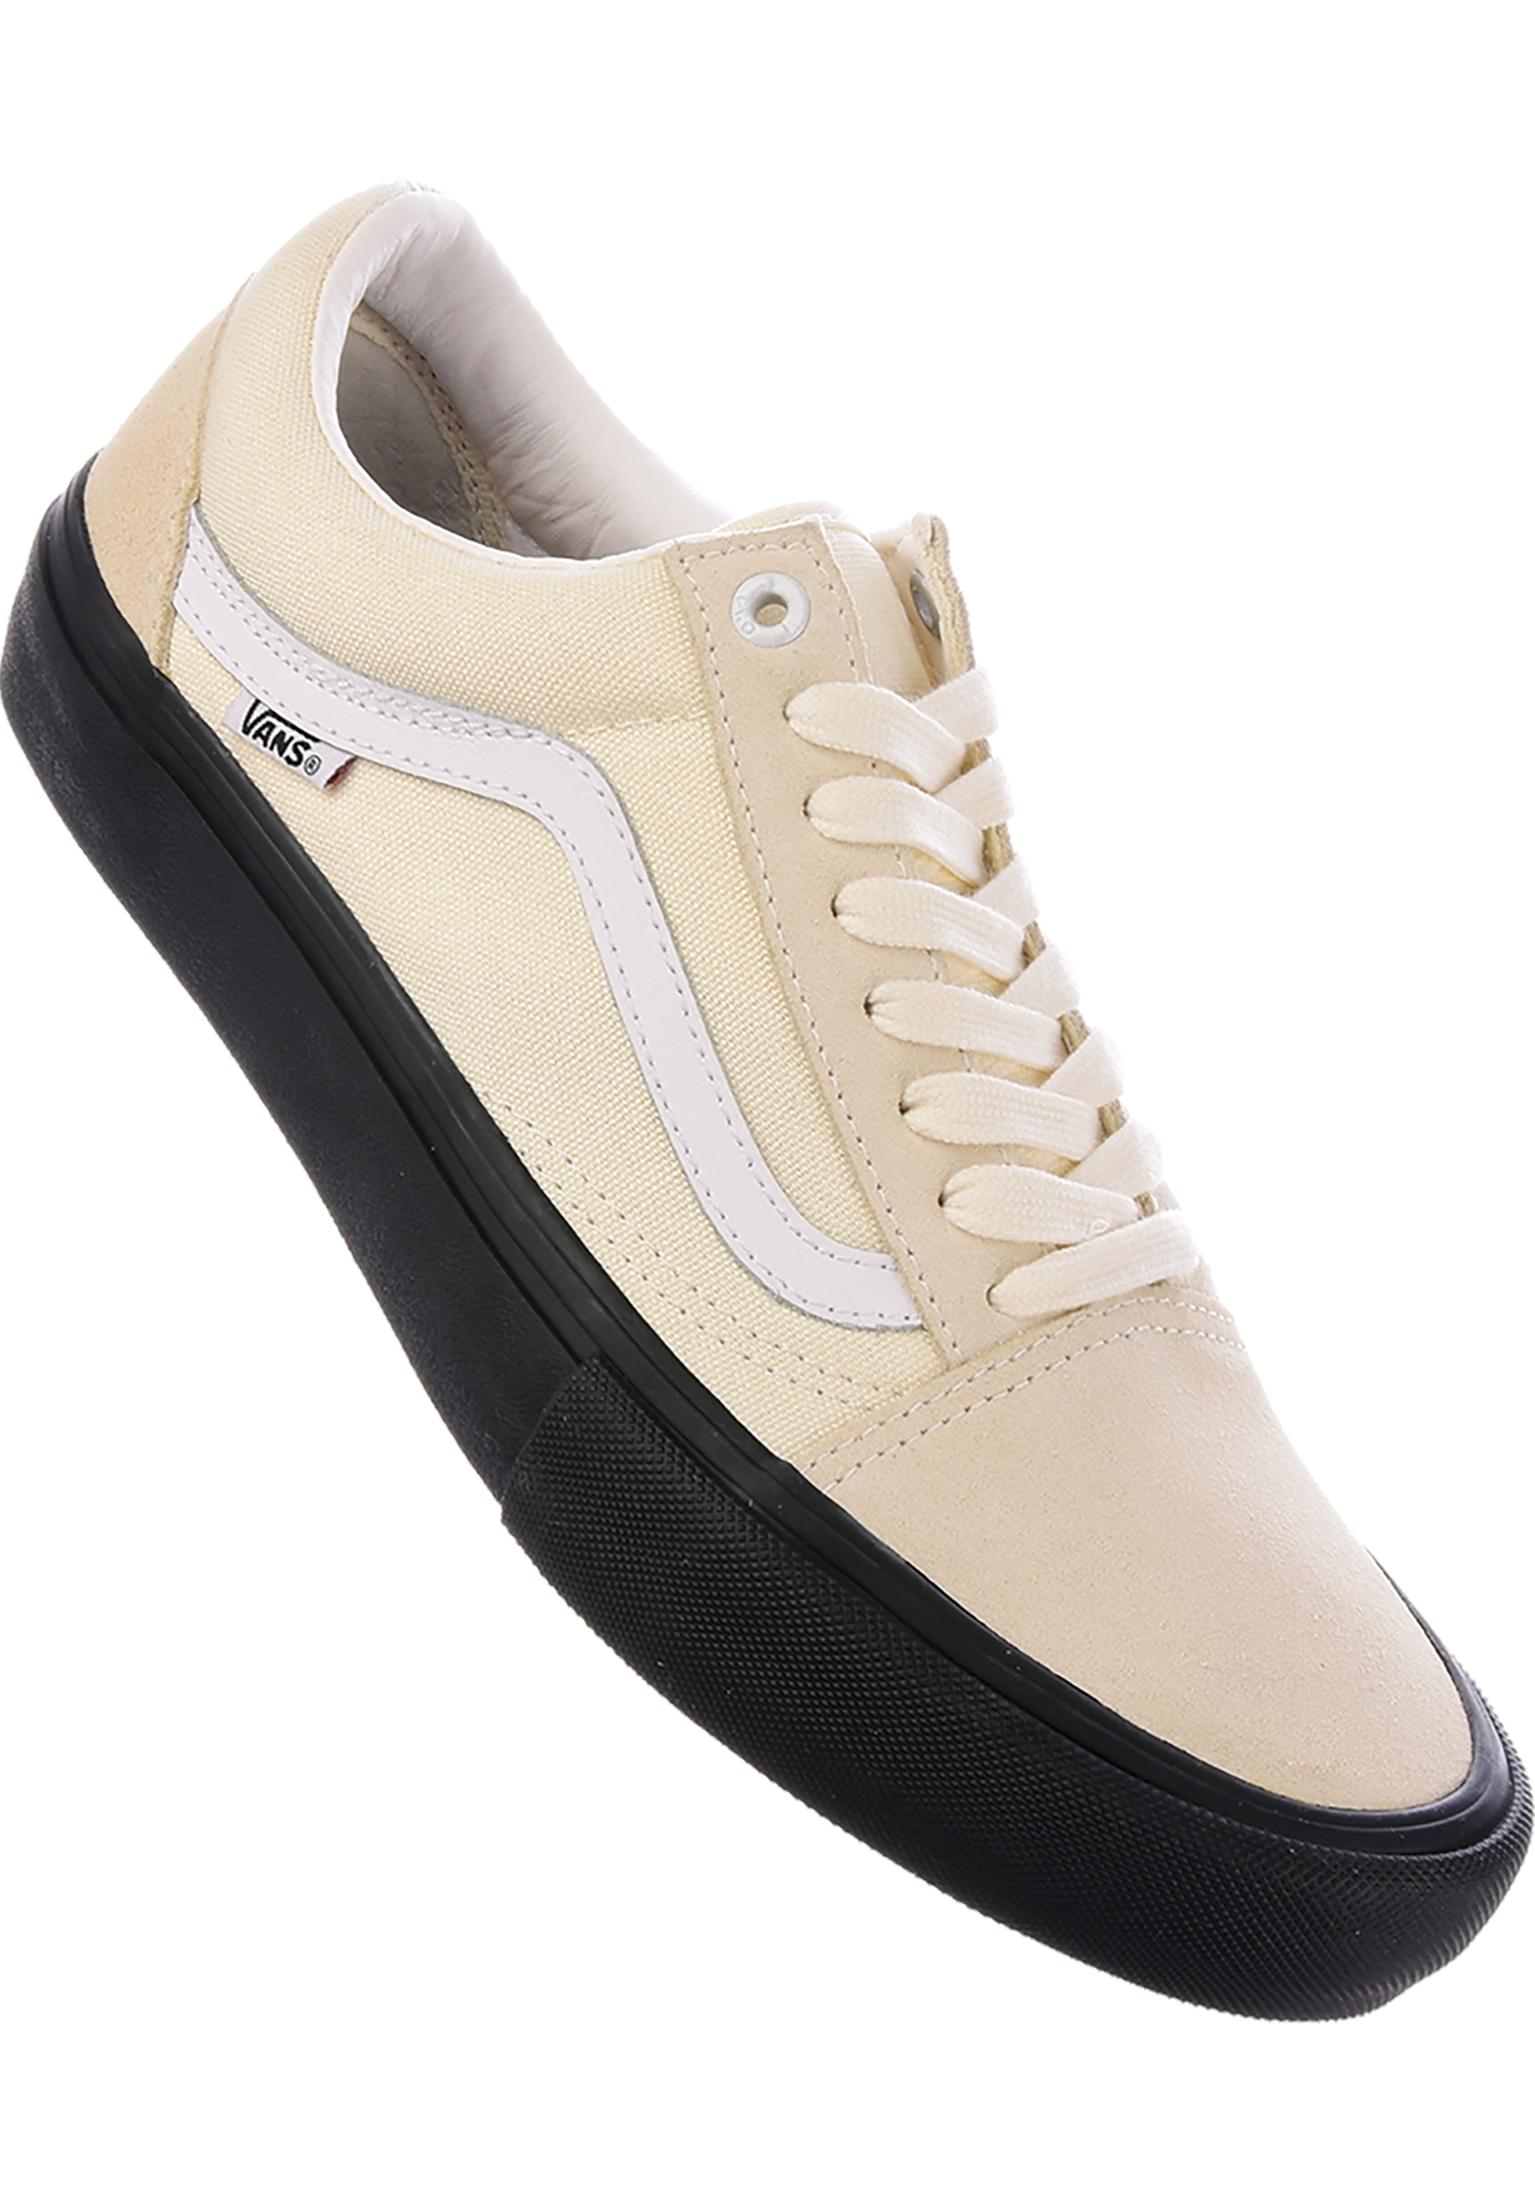 b3ff11b69b58 Old Skool Pro Vans All Shoes in classicwhite-black for Men